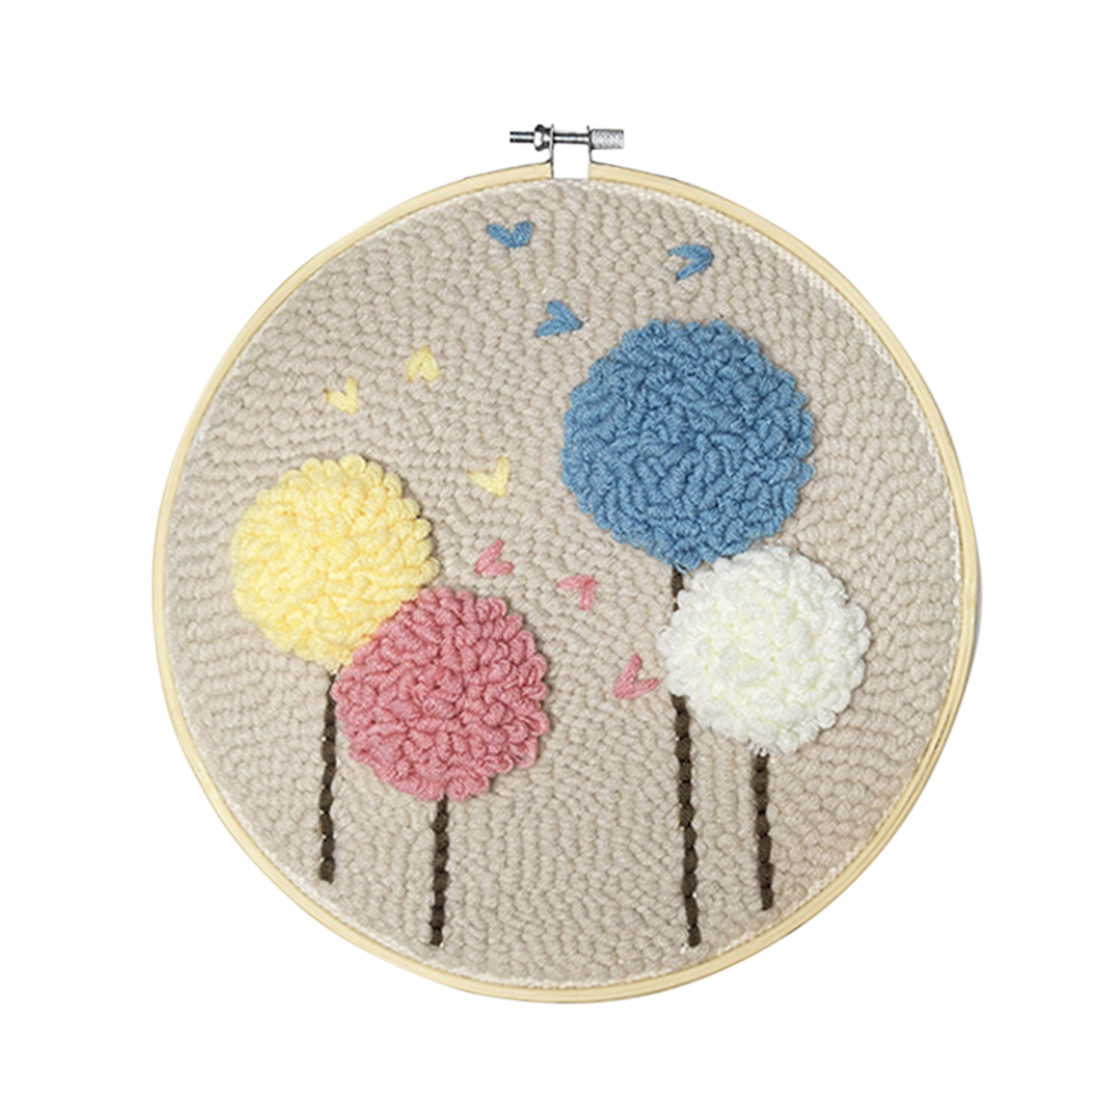 Flower Needlework Handmade Rug Hooking Set with Embroidery Hoop Table Cloth Felting Threader Punch Needle Sets DIY Embroidery Kit for Starters